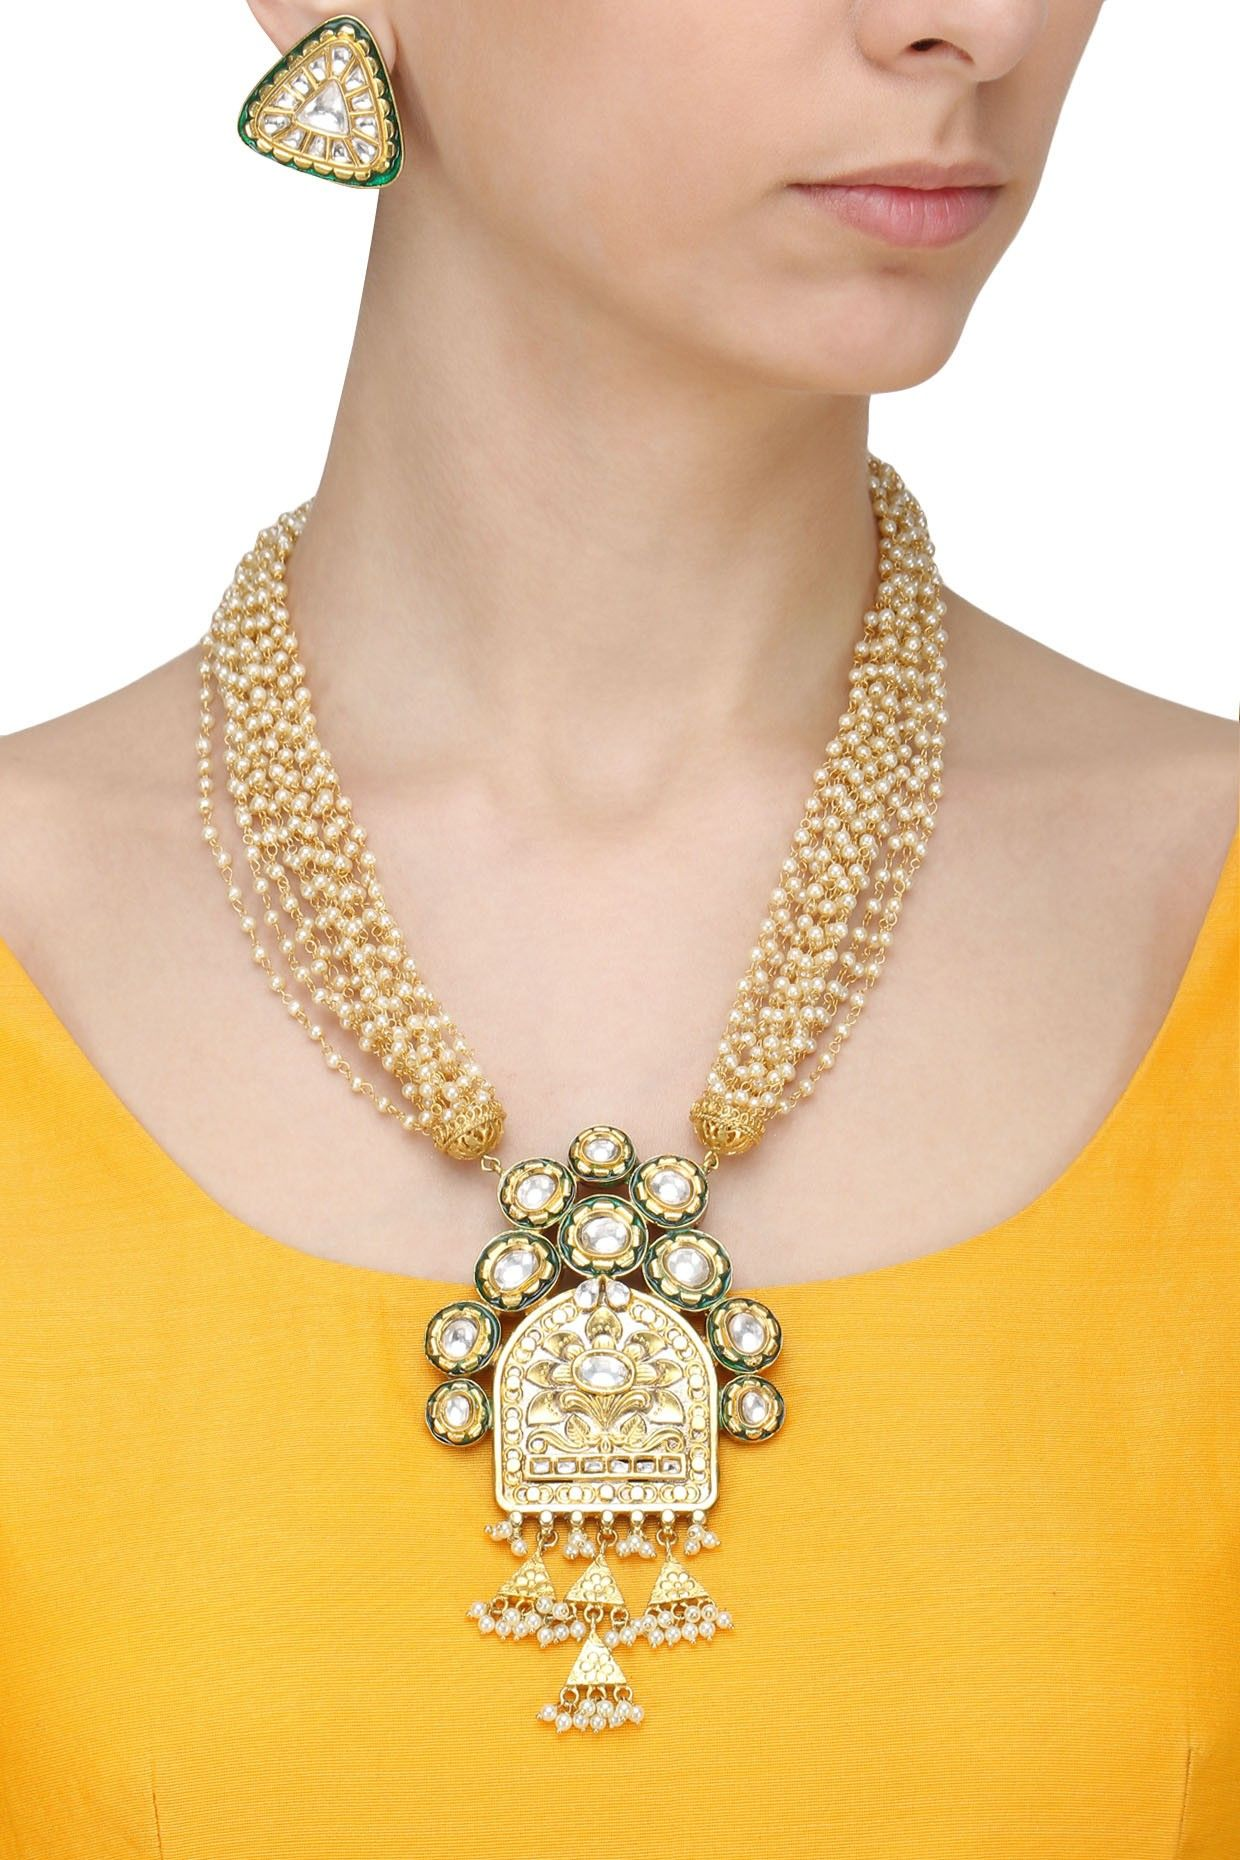 Anjali jain gold finish textured pendant pearl chain necklace set